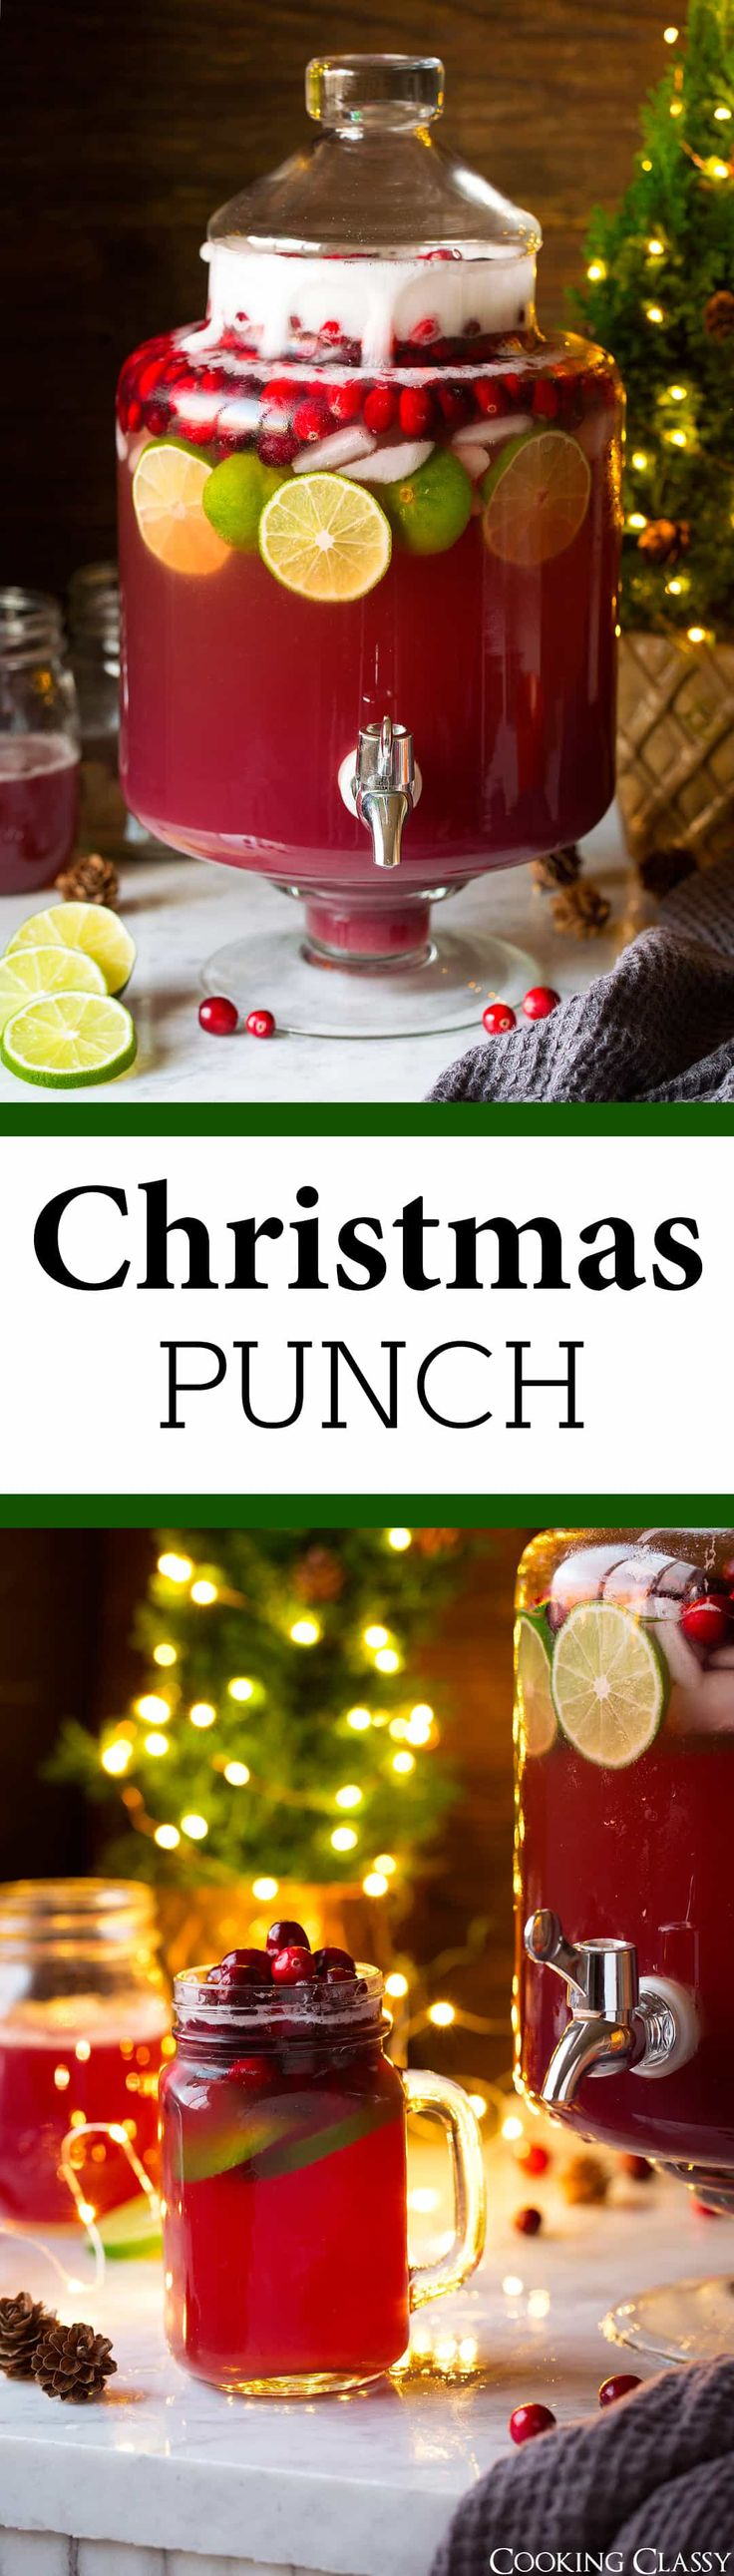 Christmas Punch Ingredients 6 cups cranberry juice or pomegranate cranberry juice* 3 cups pineapple juice 1 Tbsp almond extract 3 liters ginger ale 1 12 oz. bag fresh cranberries (optional) 2 fresh limes, sliced (optional) Ice